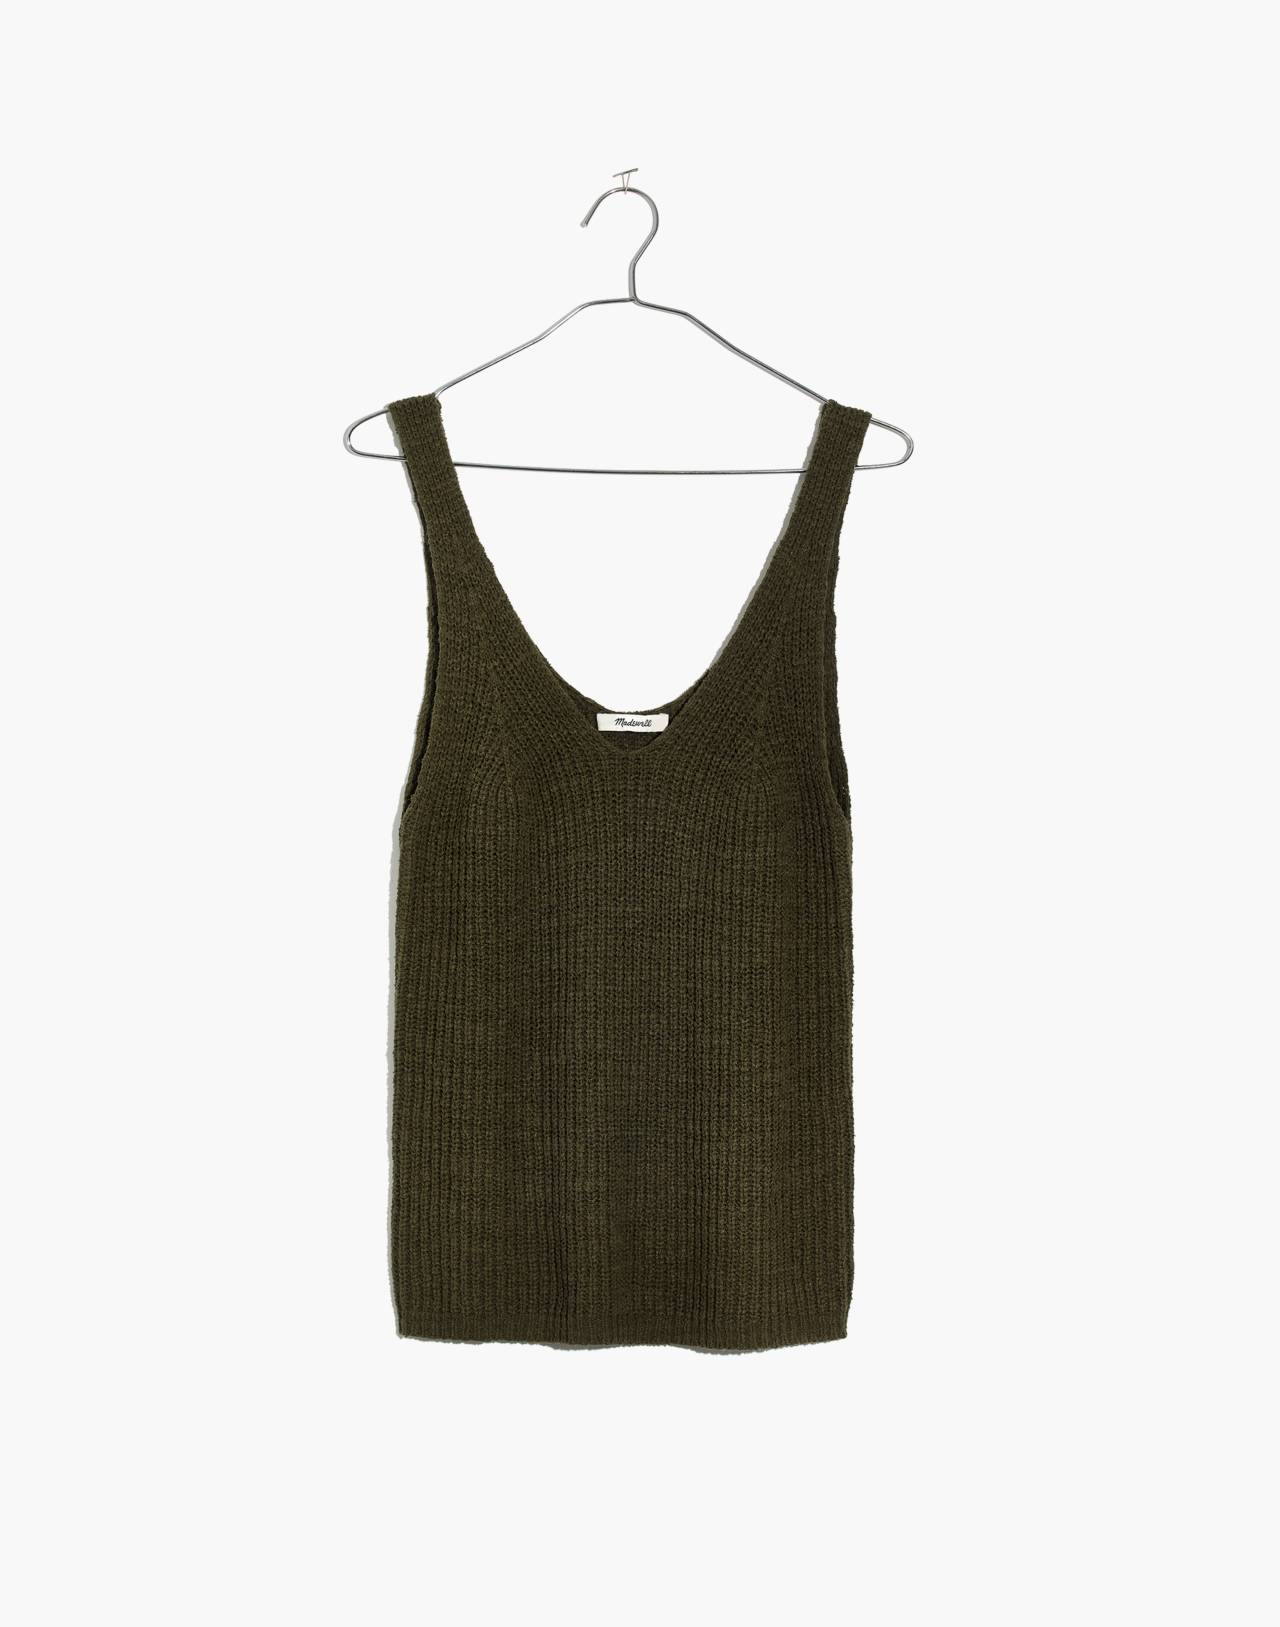 Monterey Sweater Tank in dark olive image 4